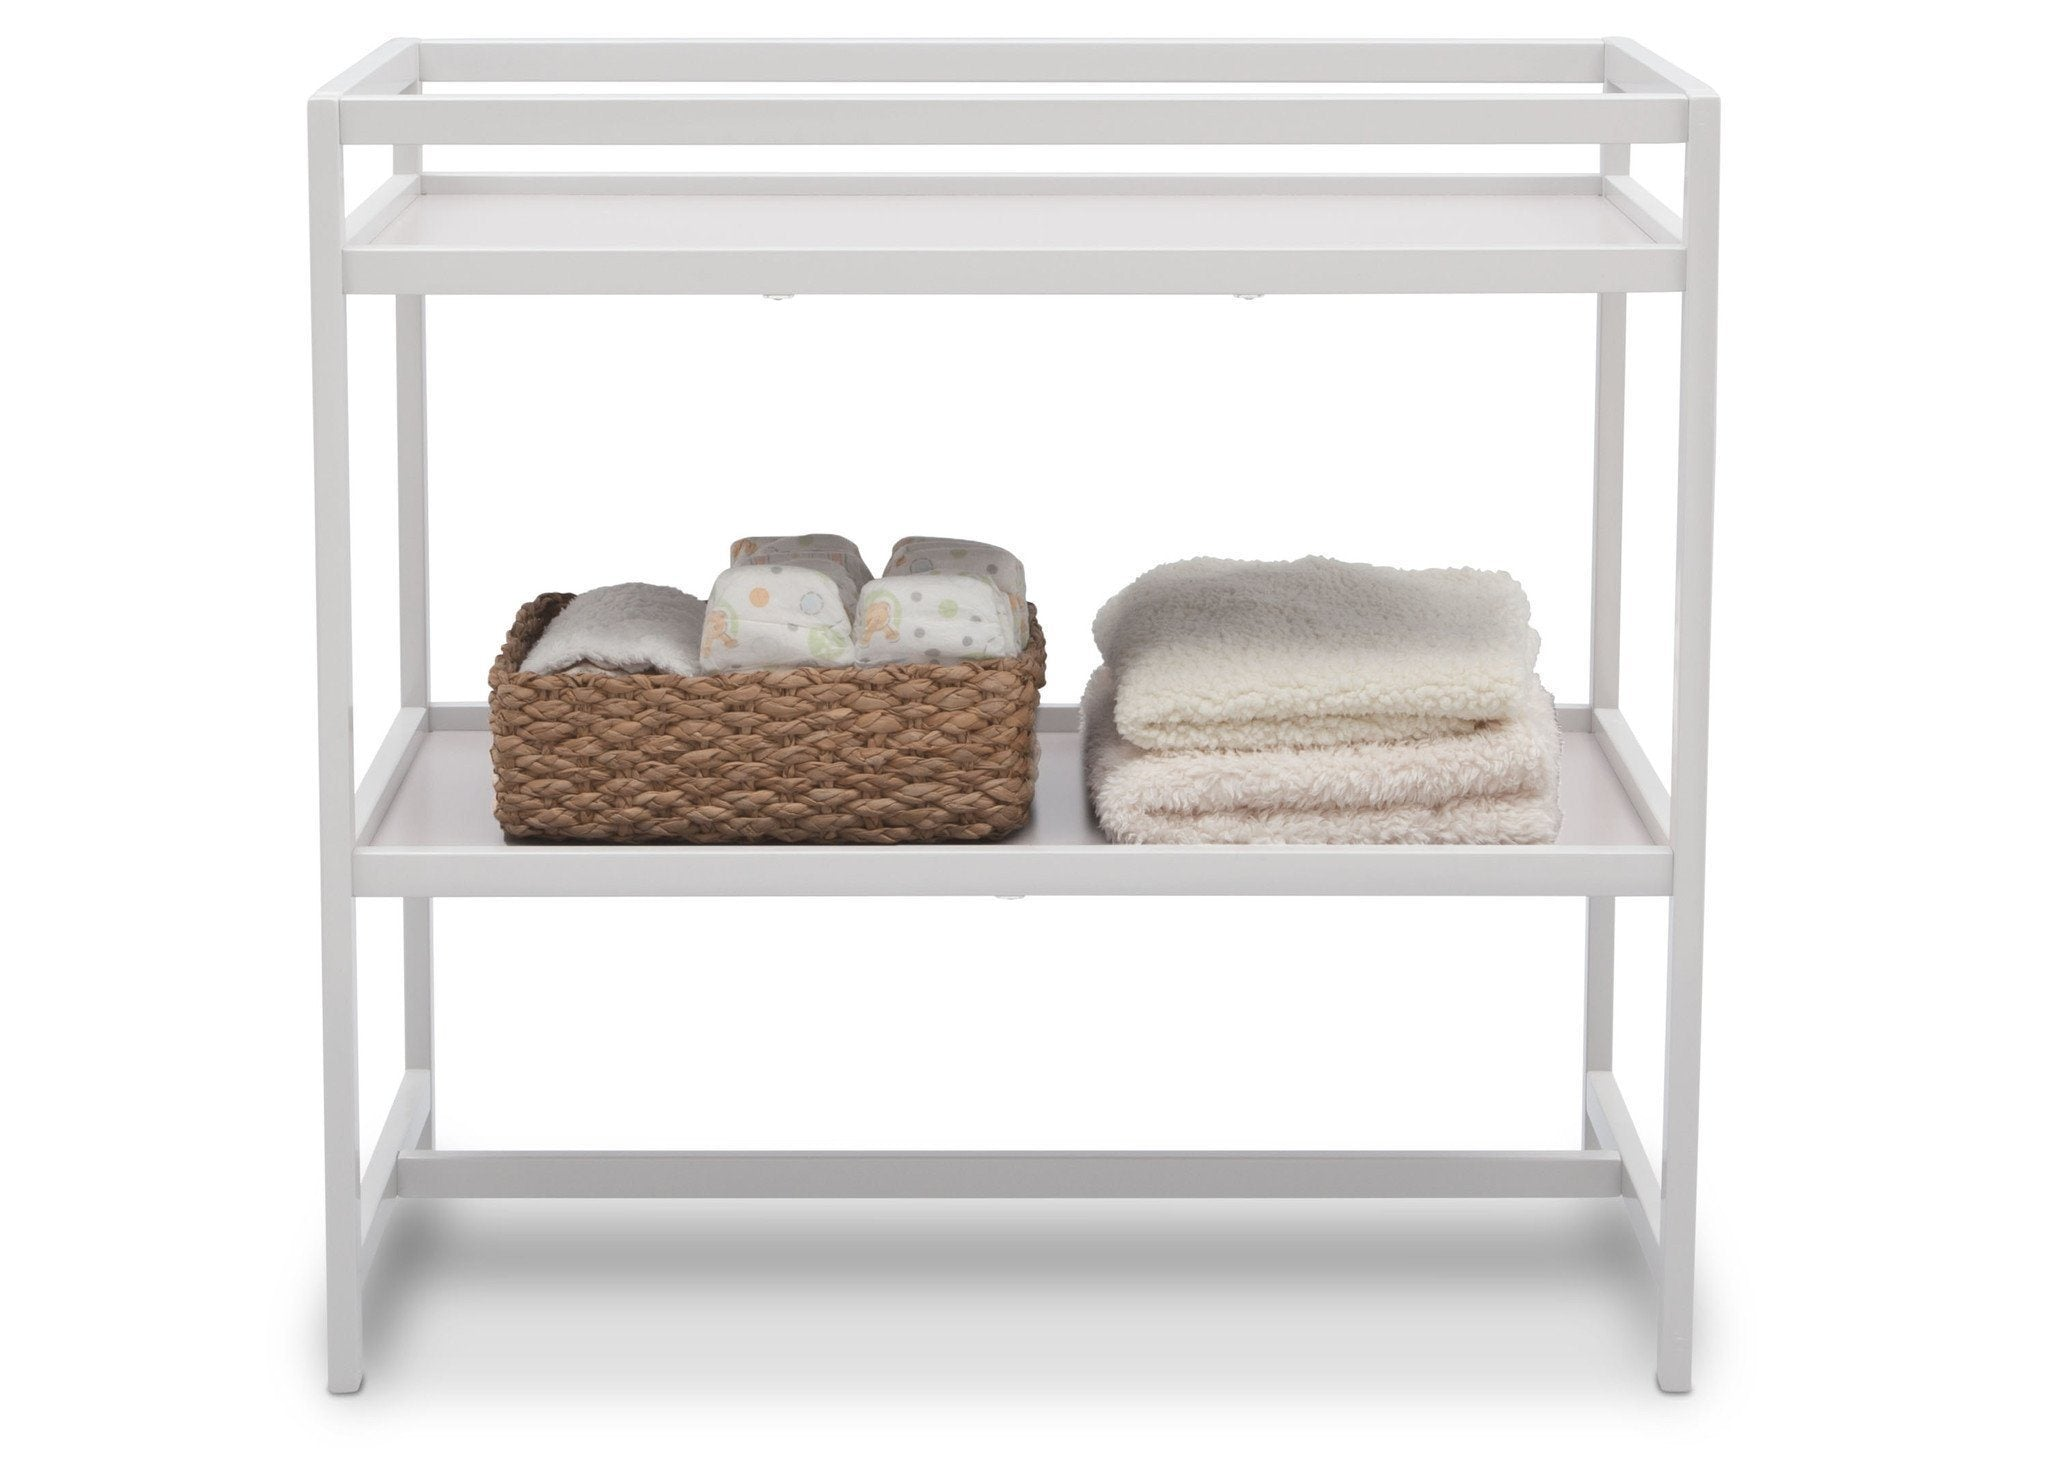 Delta Children White (100) Harbor Changing Table, Front View with Props b3b